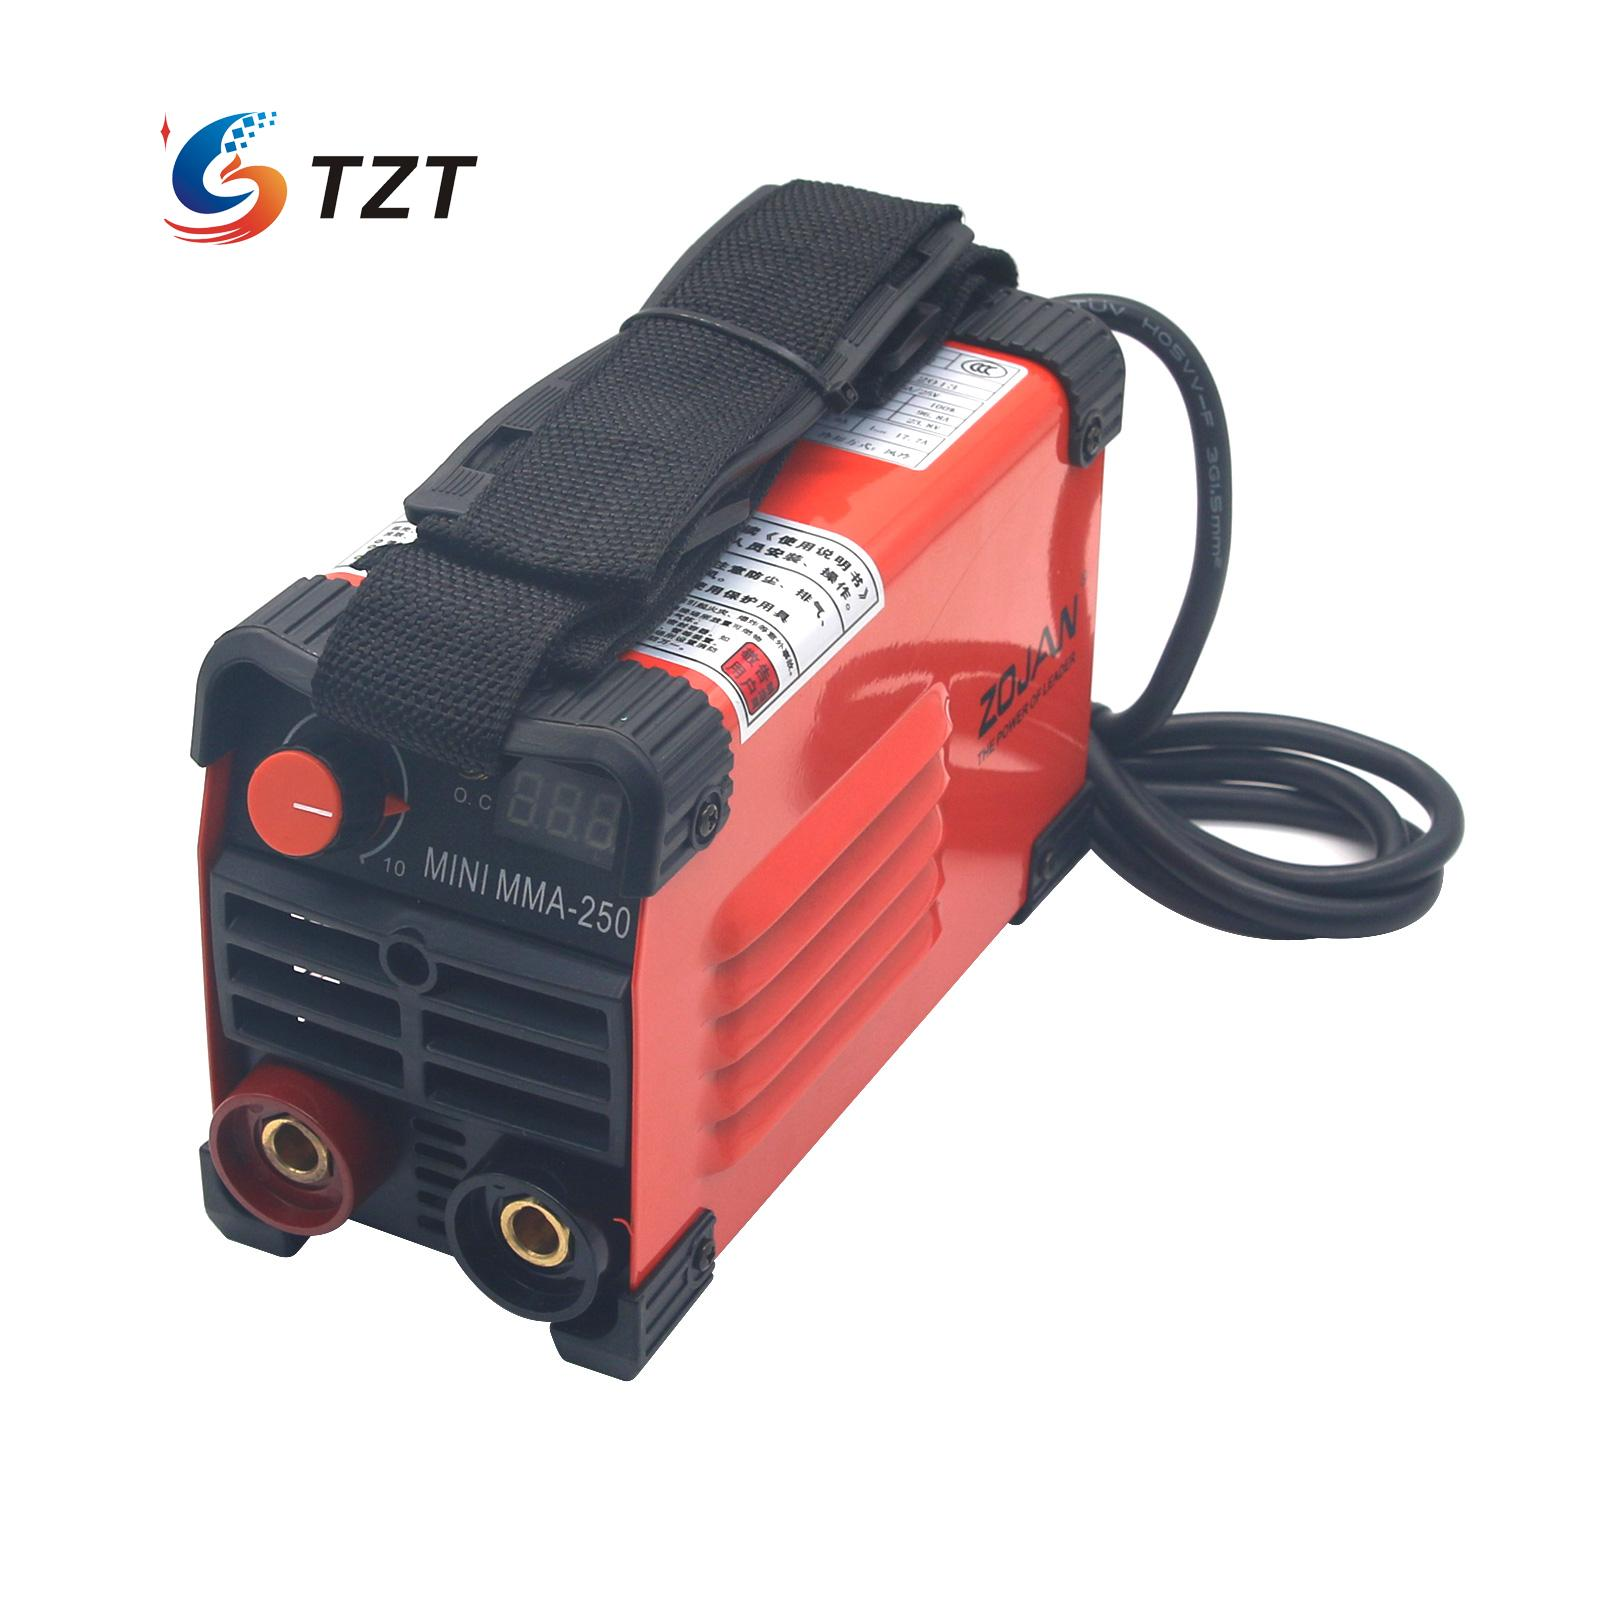 Ebay Motors Lightweight Portable Mma Electric Welder 220v Inverter Arc Welding Machine Tool High Quality